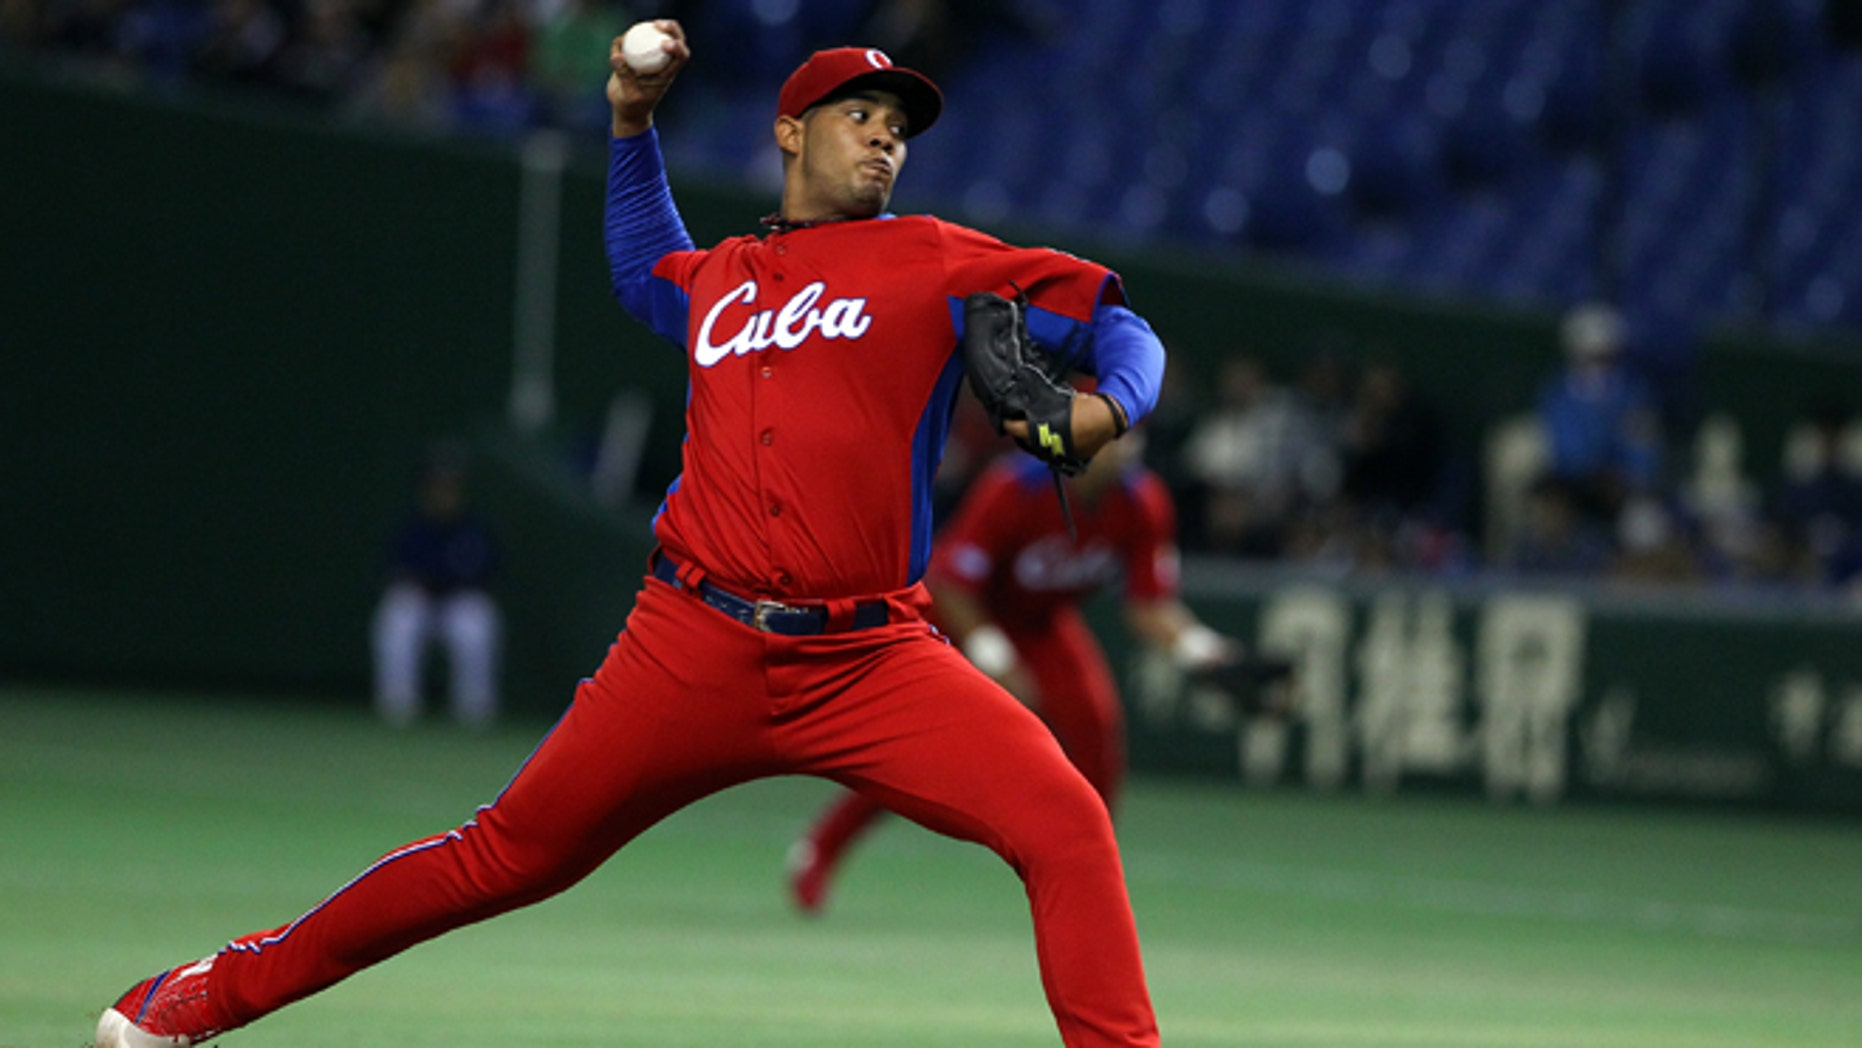 TOKYO, JAPAN - MARCH 11: Starting Pitcher  Vladimir Garcia #34 of Cuba pitches during the World Baseball Classic Second Round Pool 1 game between Cuba and the Netherlands at Tokyo Dome on March 11, 2013 in Tokyo, Japan. (Photo by Koji Watanabe/Getty Images)